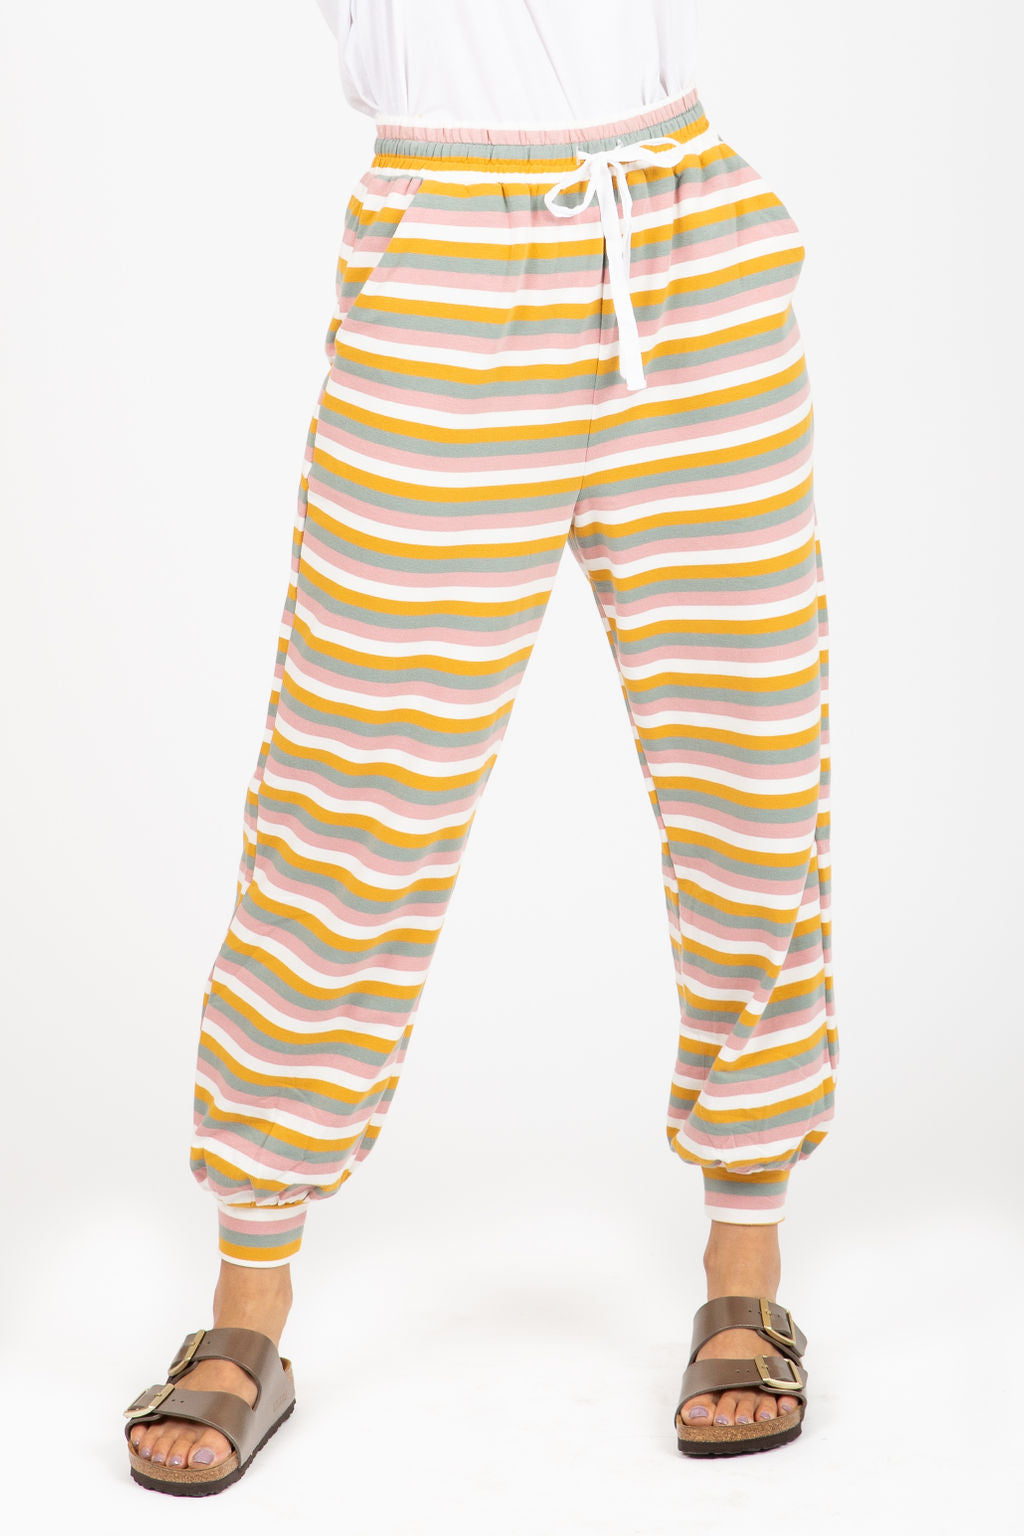 The Olsen Striped Jogger Pants in Multi